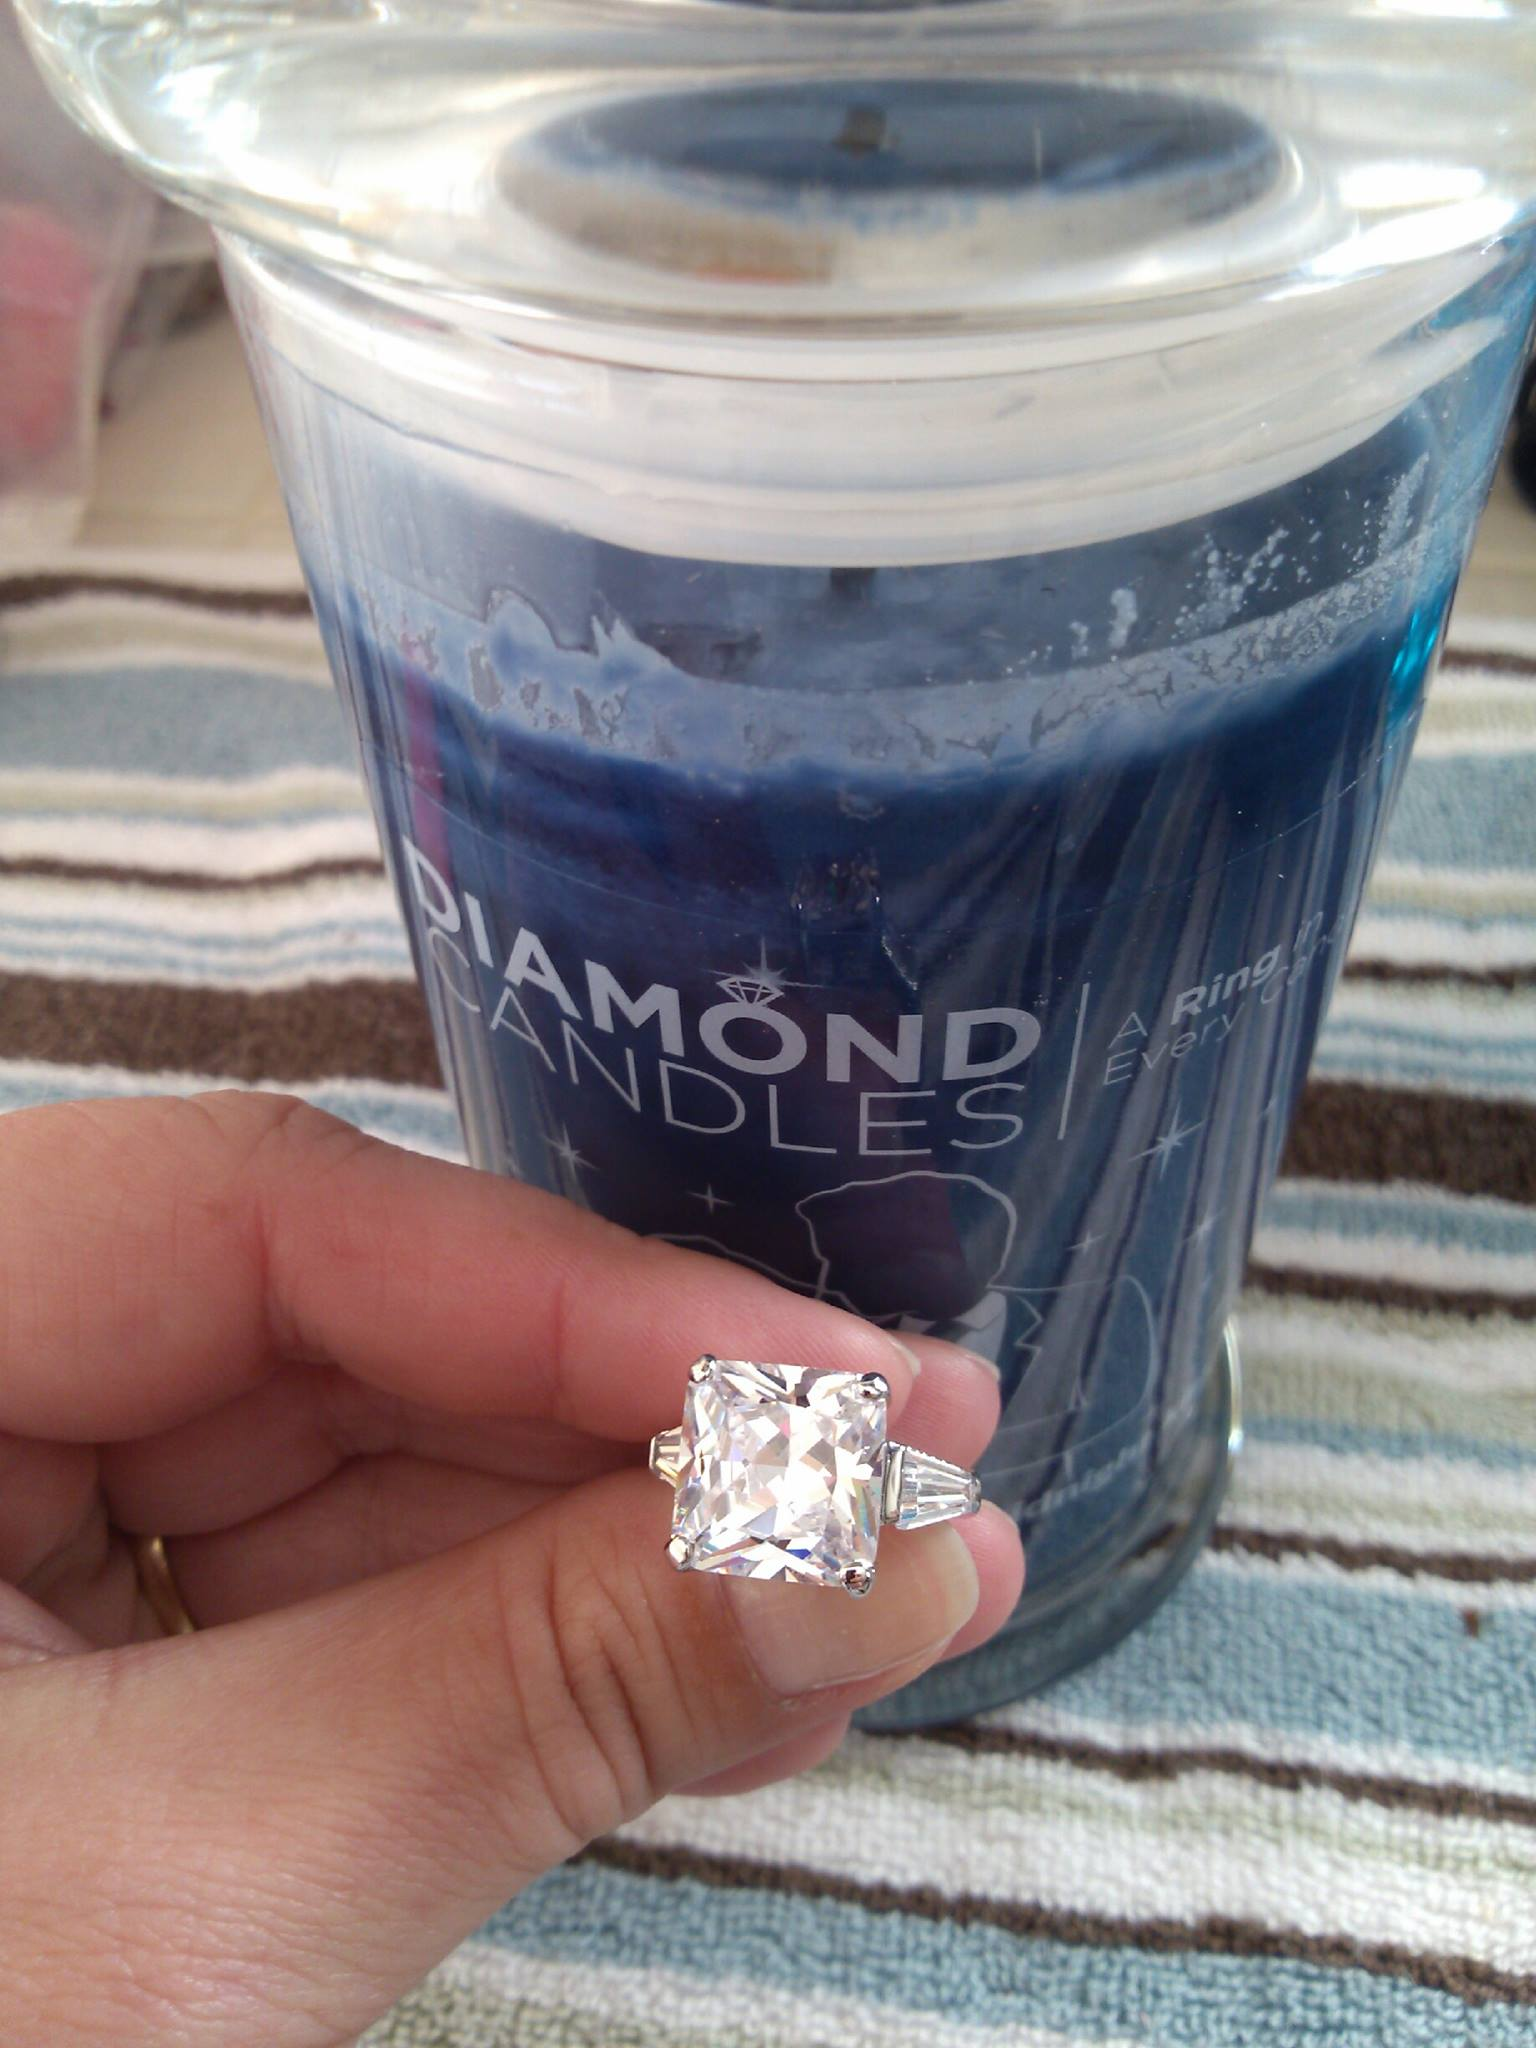 Single Blog Giveaway! Win a Diamond Candle or $25 PayPal! Ends 11/6/2014 5:00 am PST